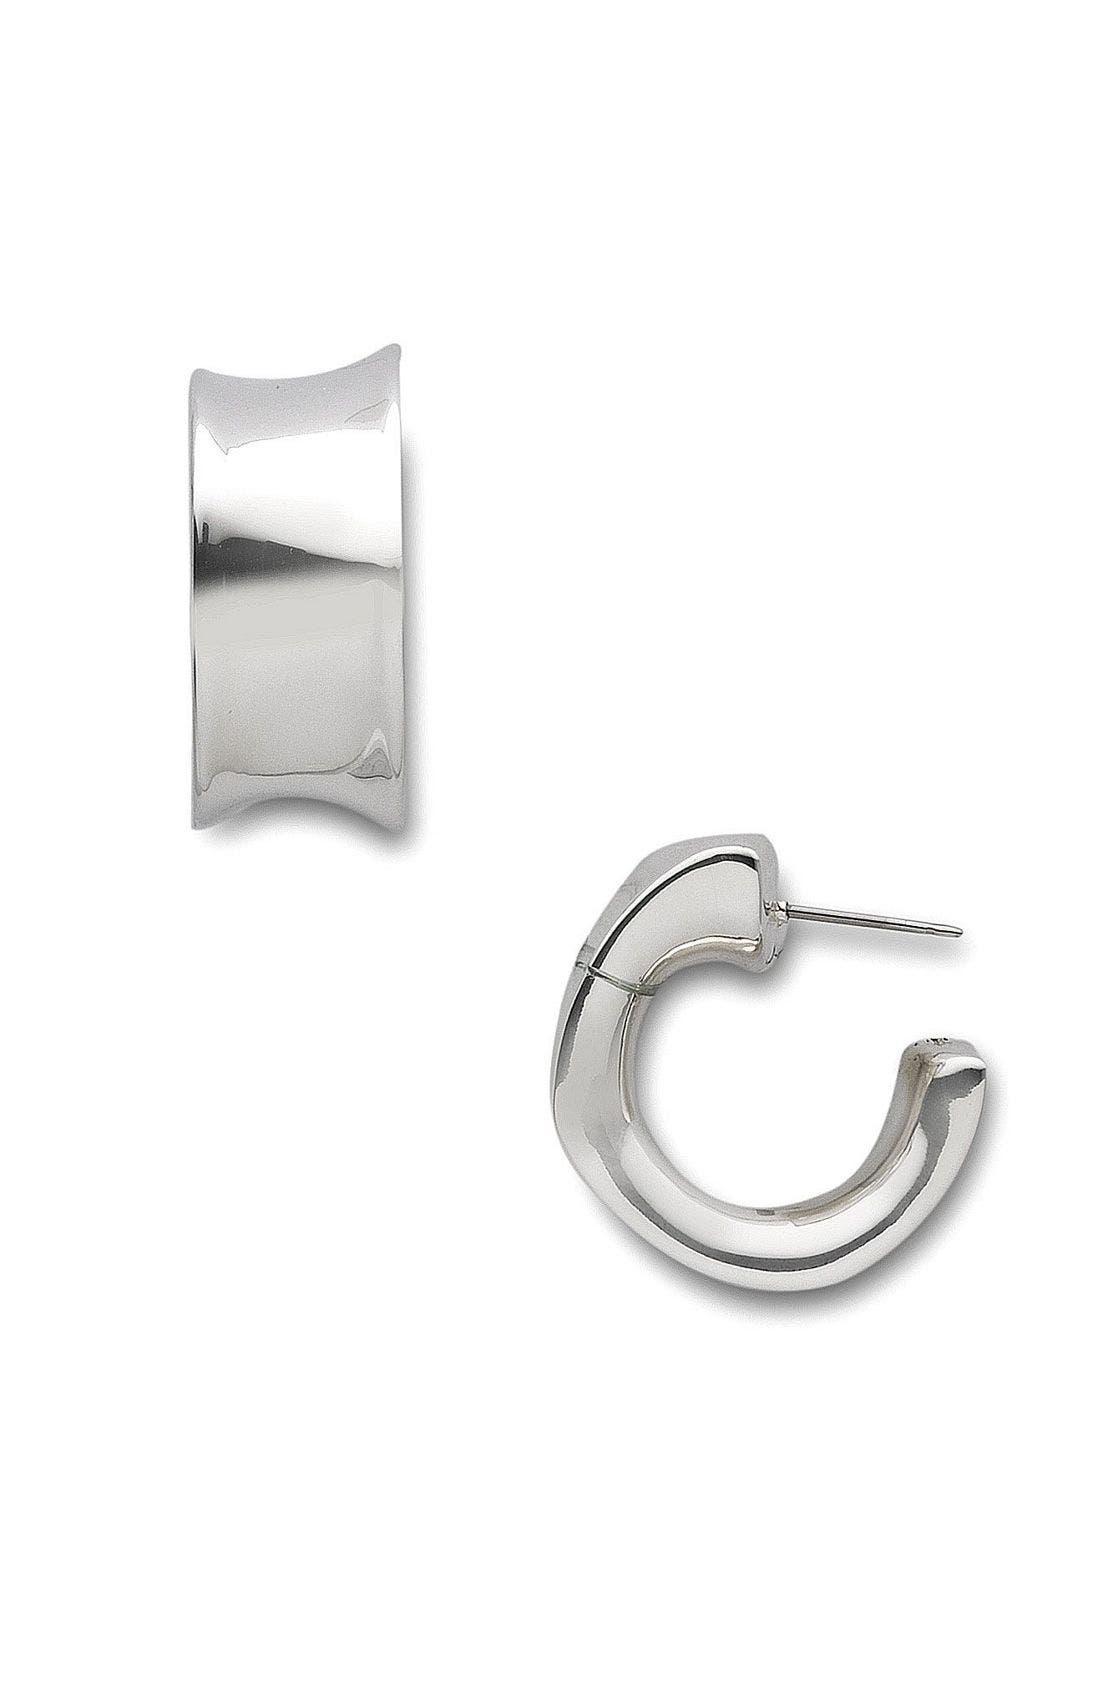 Main Image - Simon Sebbag Small Square Hoop Earrings